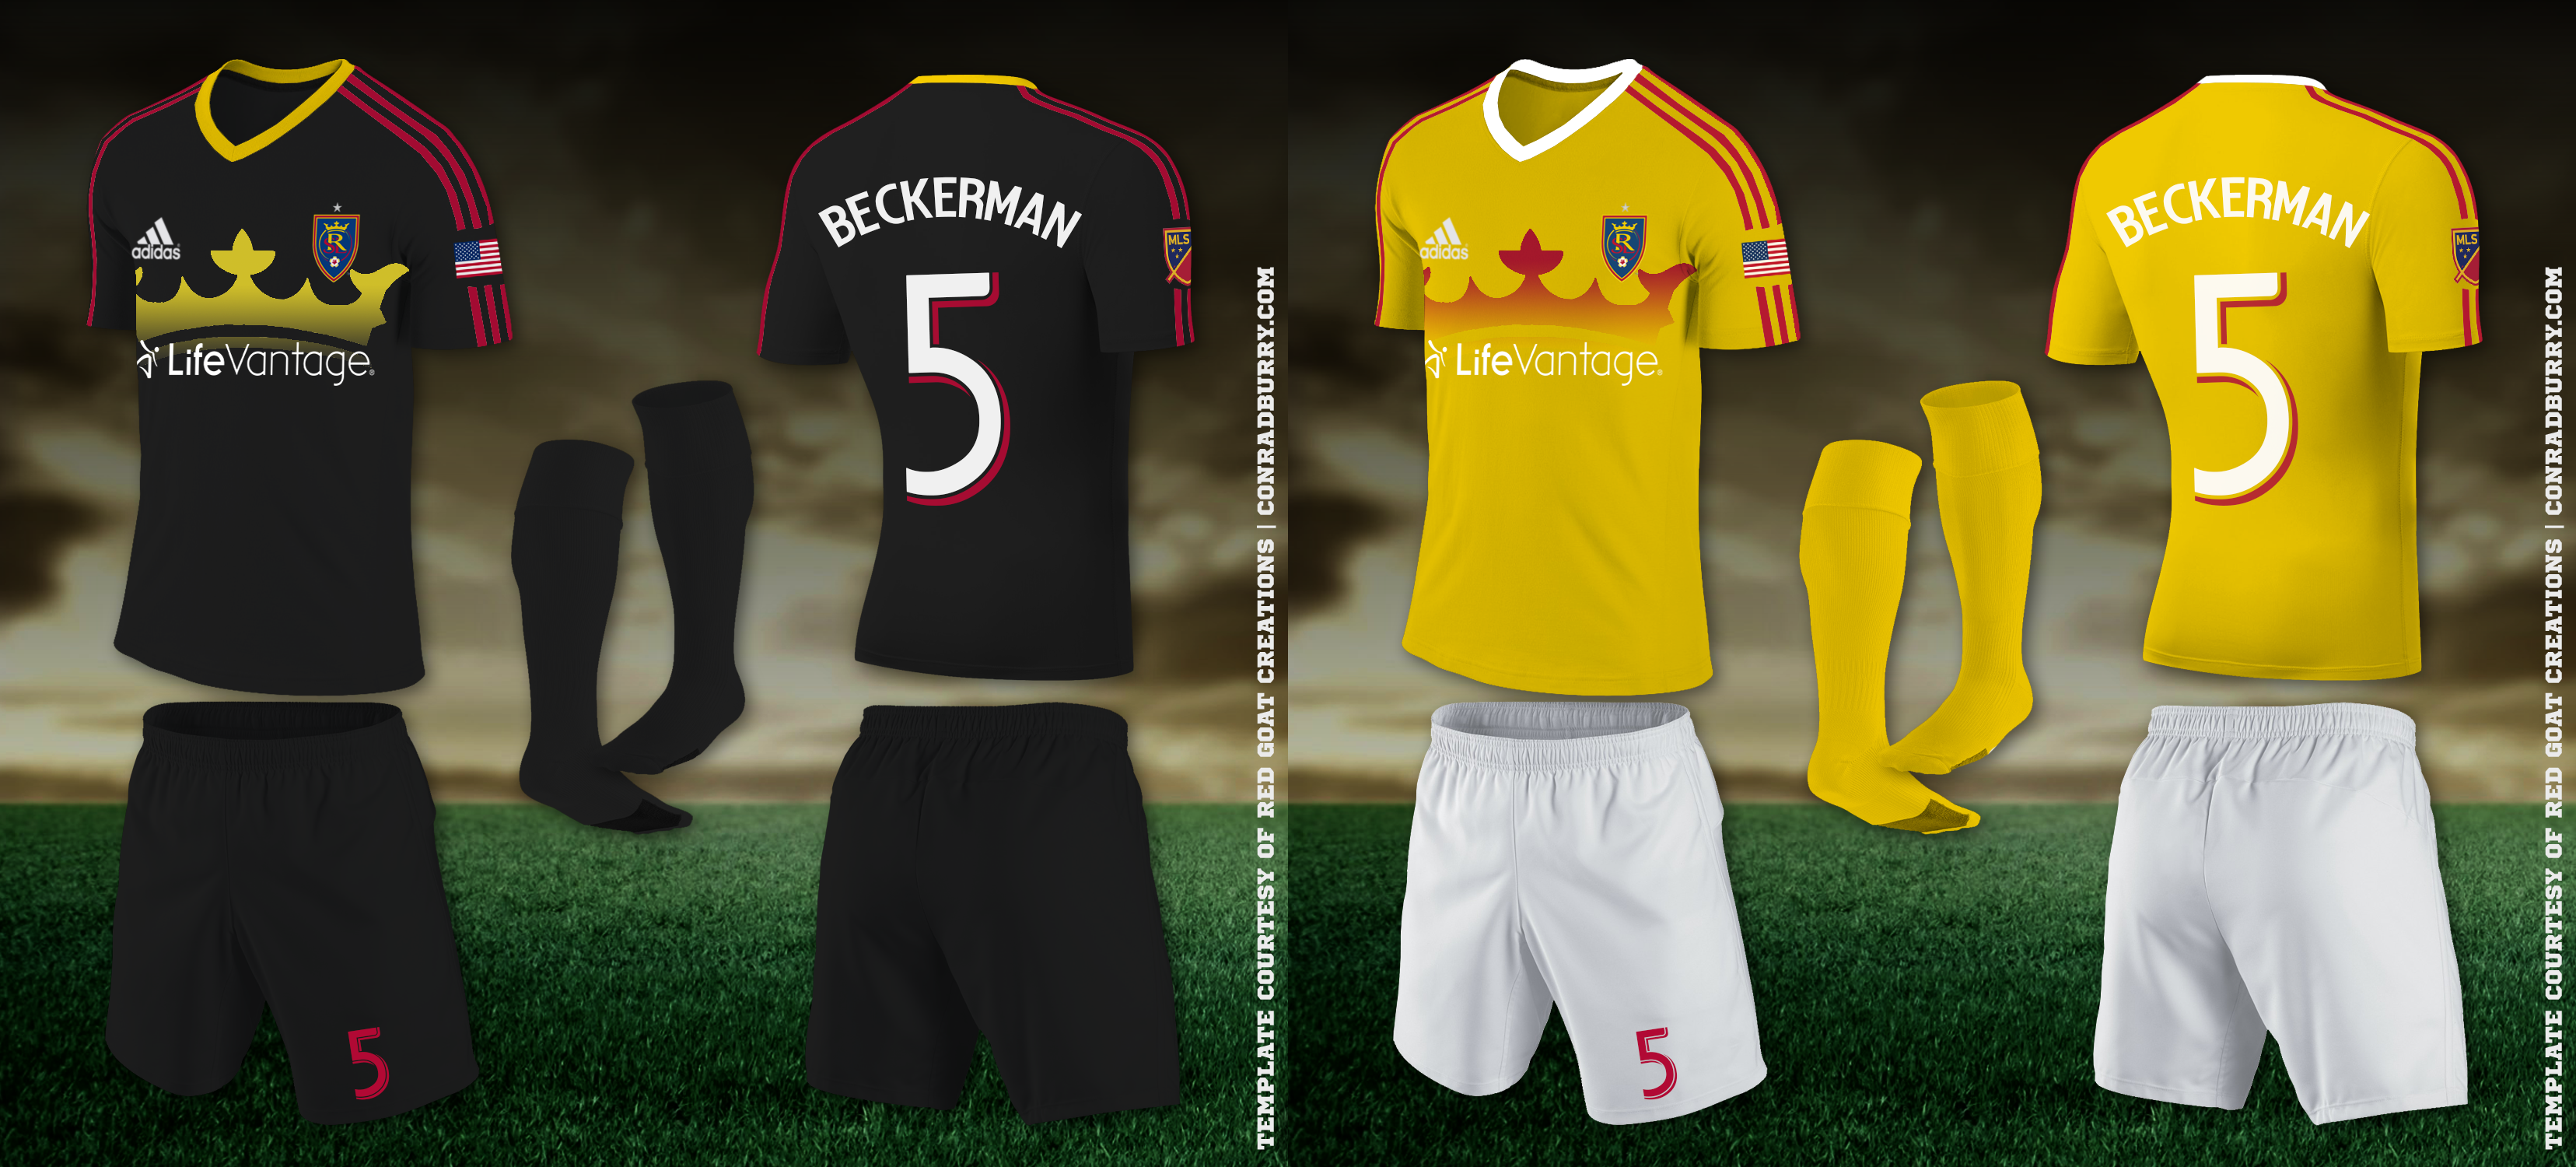 RSL Home-Away Kits RSL Alt-Alt 2 Kits - Real Salt Lake PNG